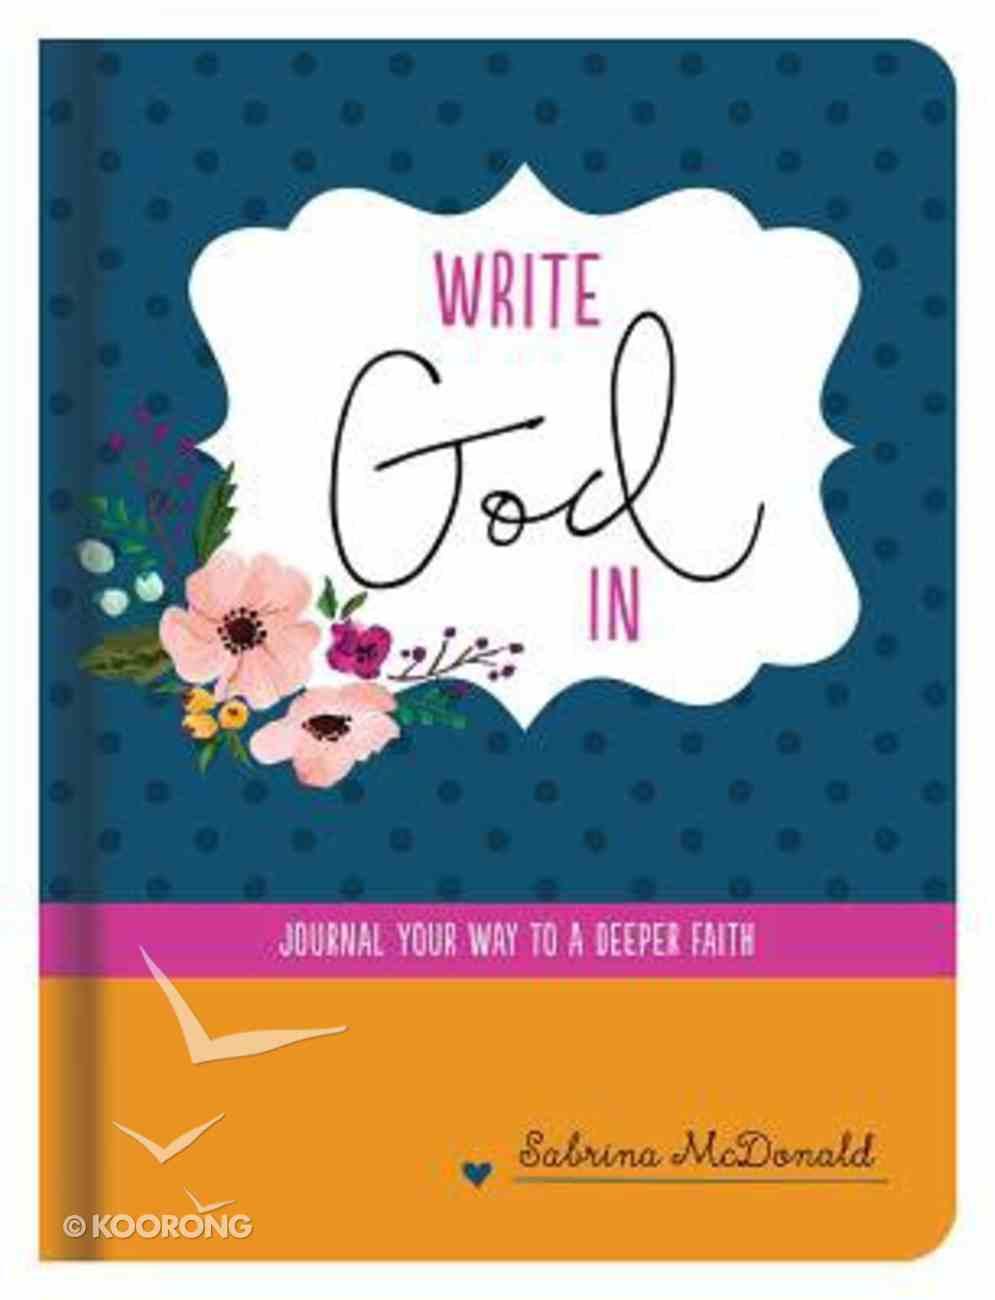 Write God in: Journal Your Way to a Deeper Faith Hardback